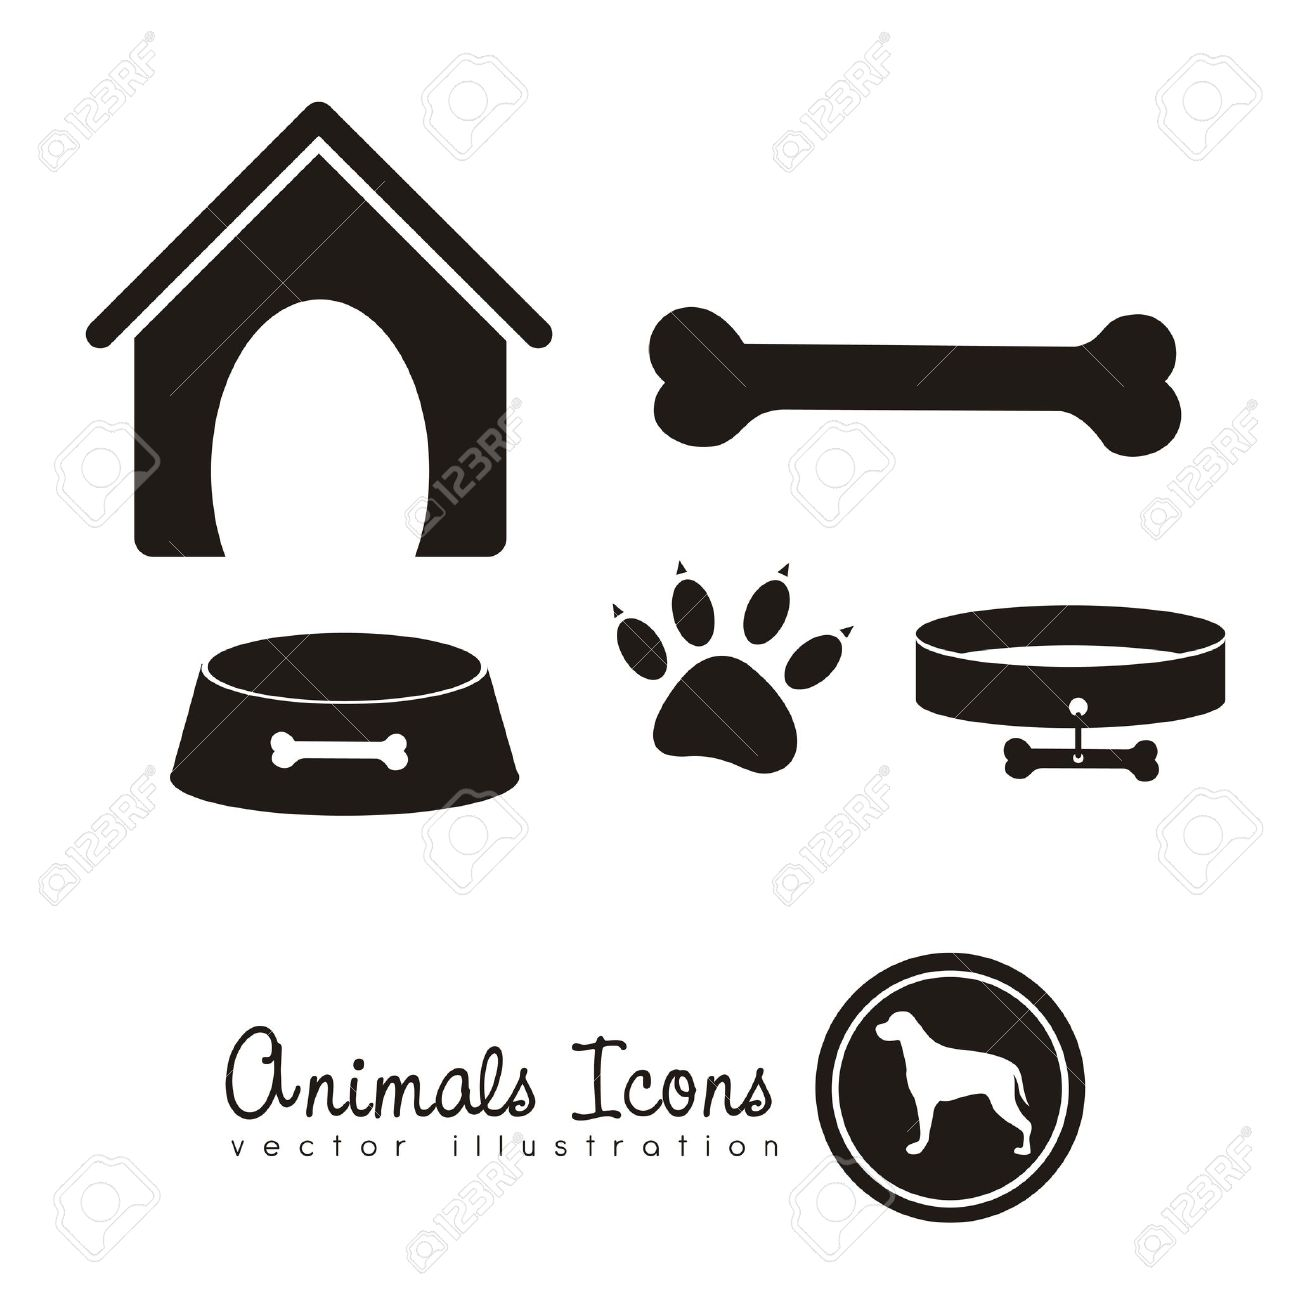 Illustration of animal icons, icons with animal silhouettes. - 16126070